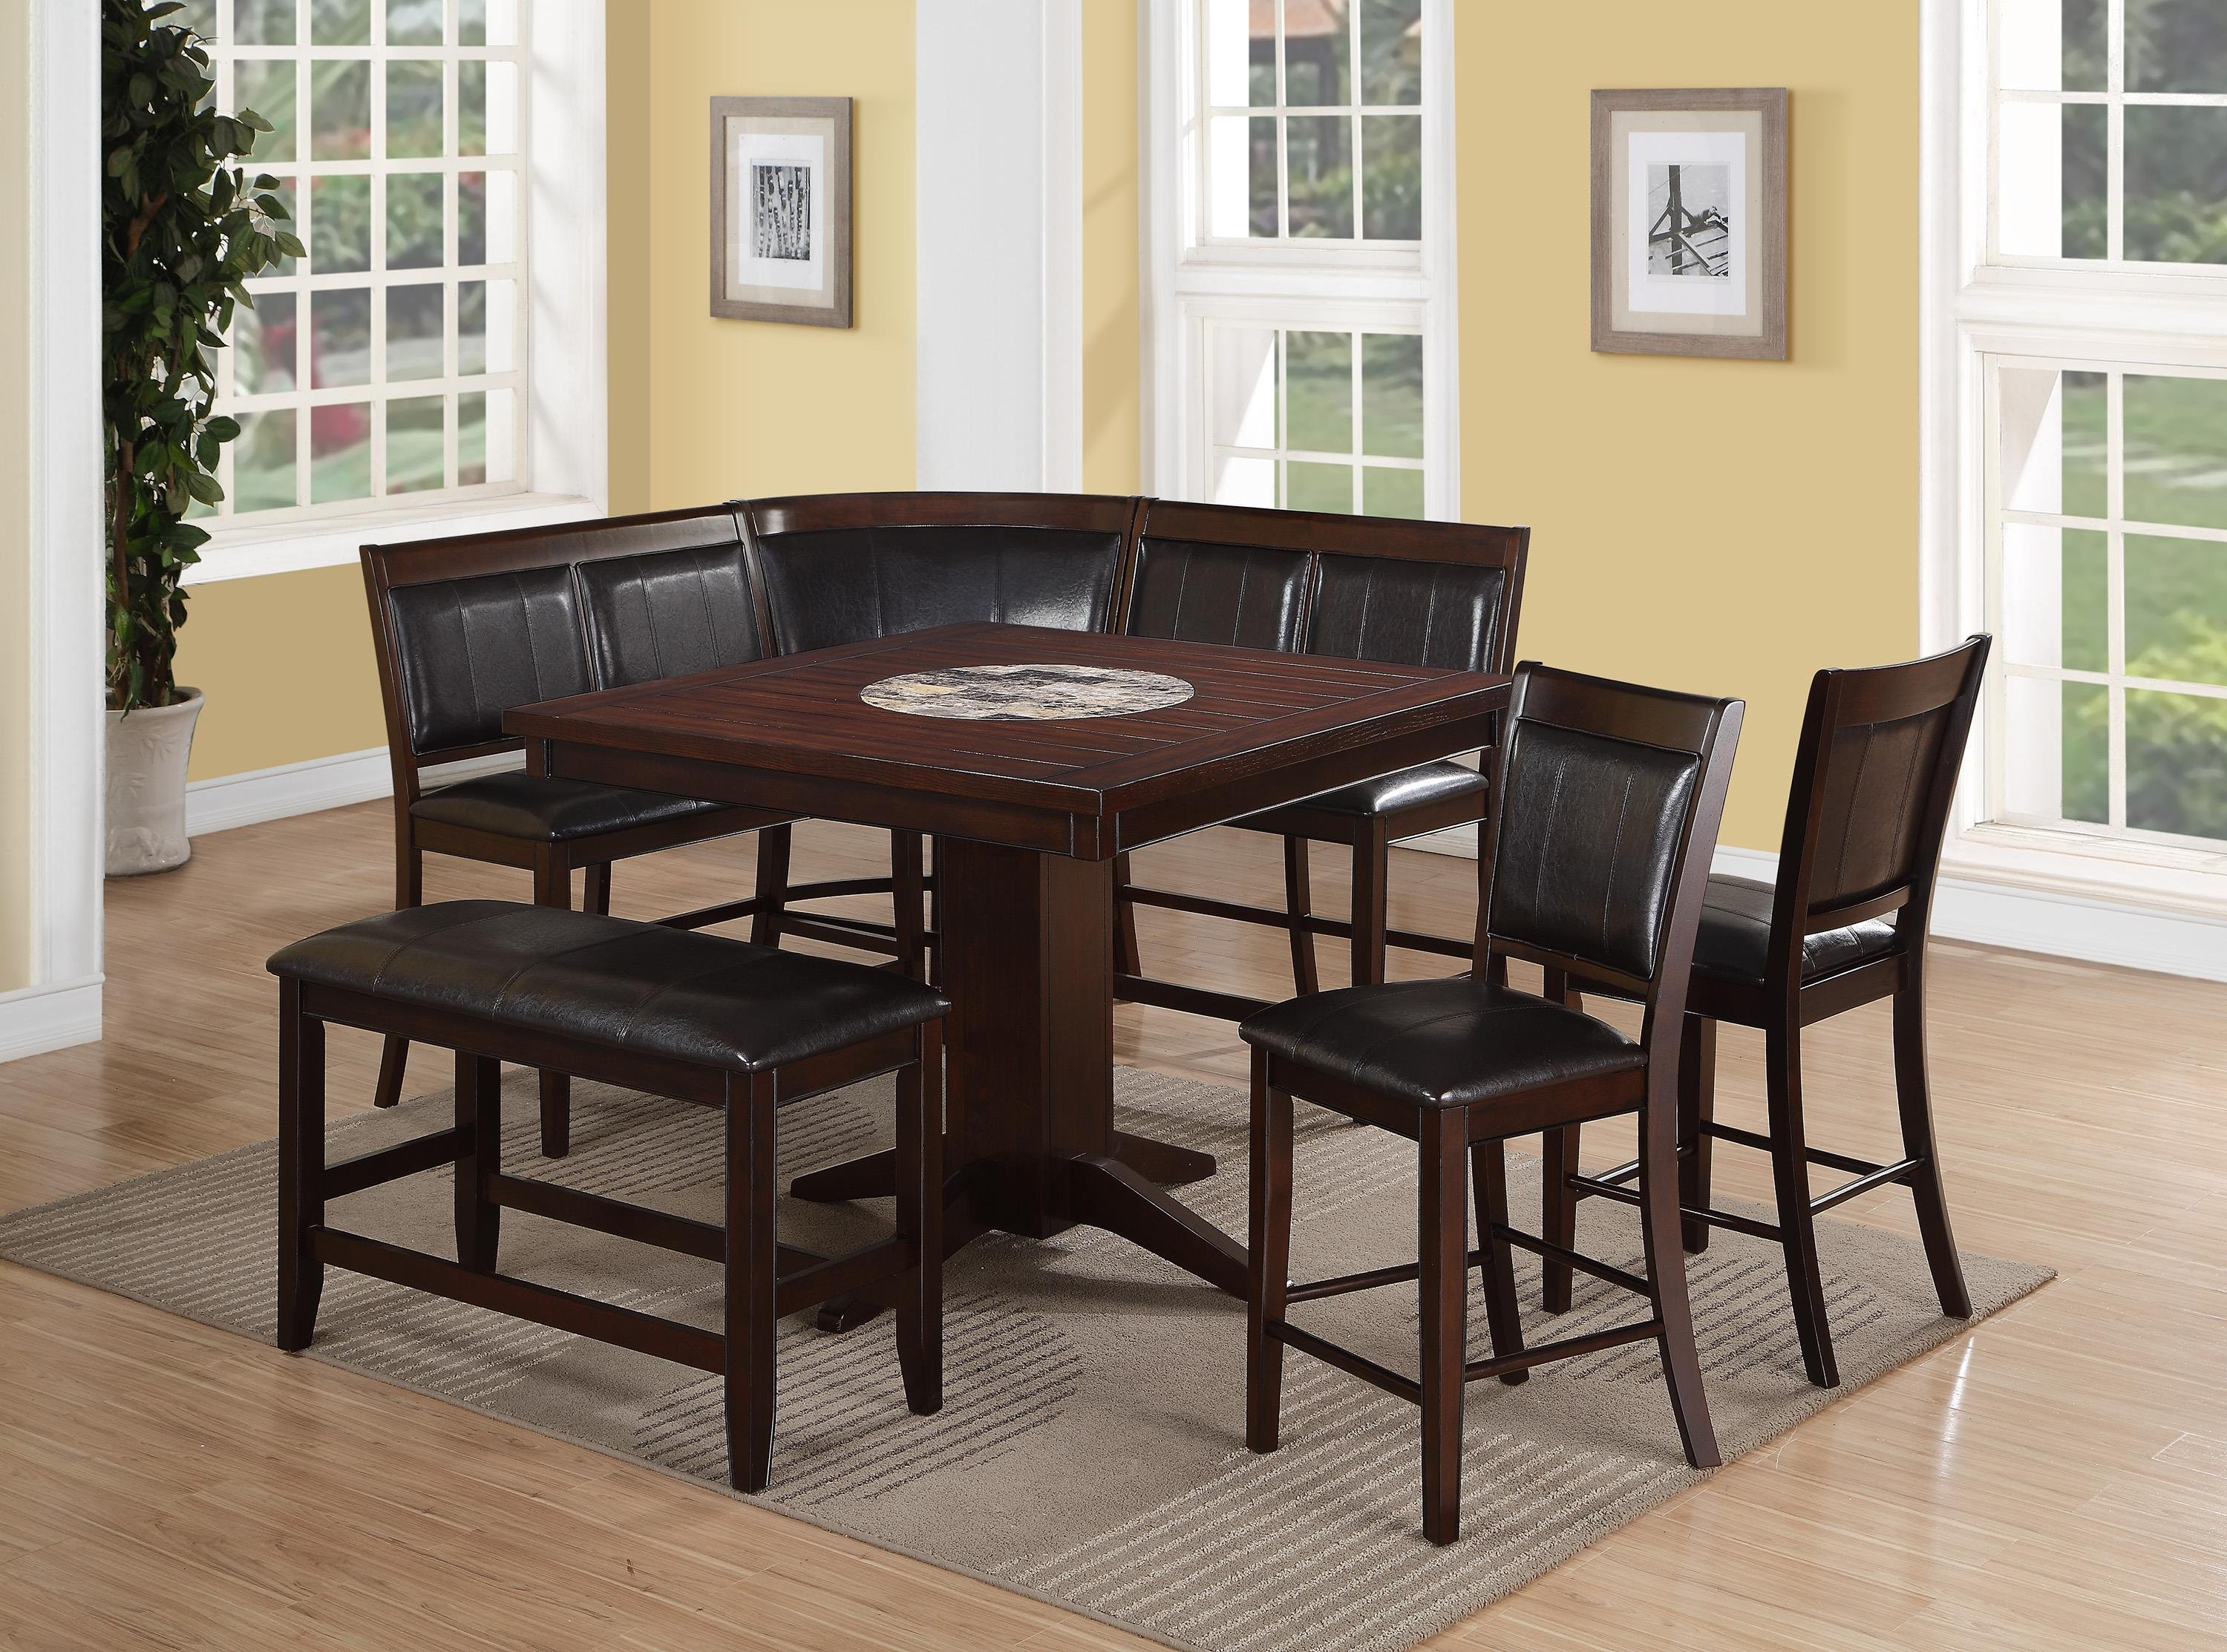 4 Piece Counter Height Dining Set   Harrison Brown